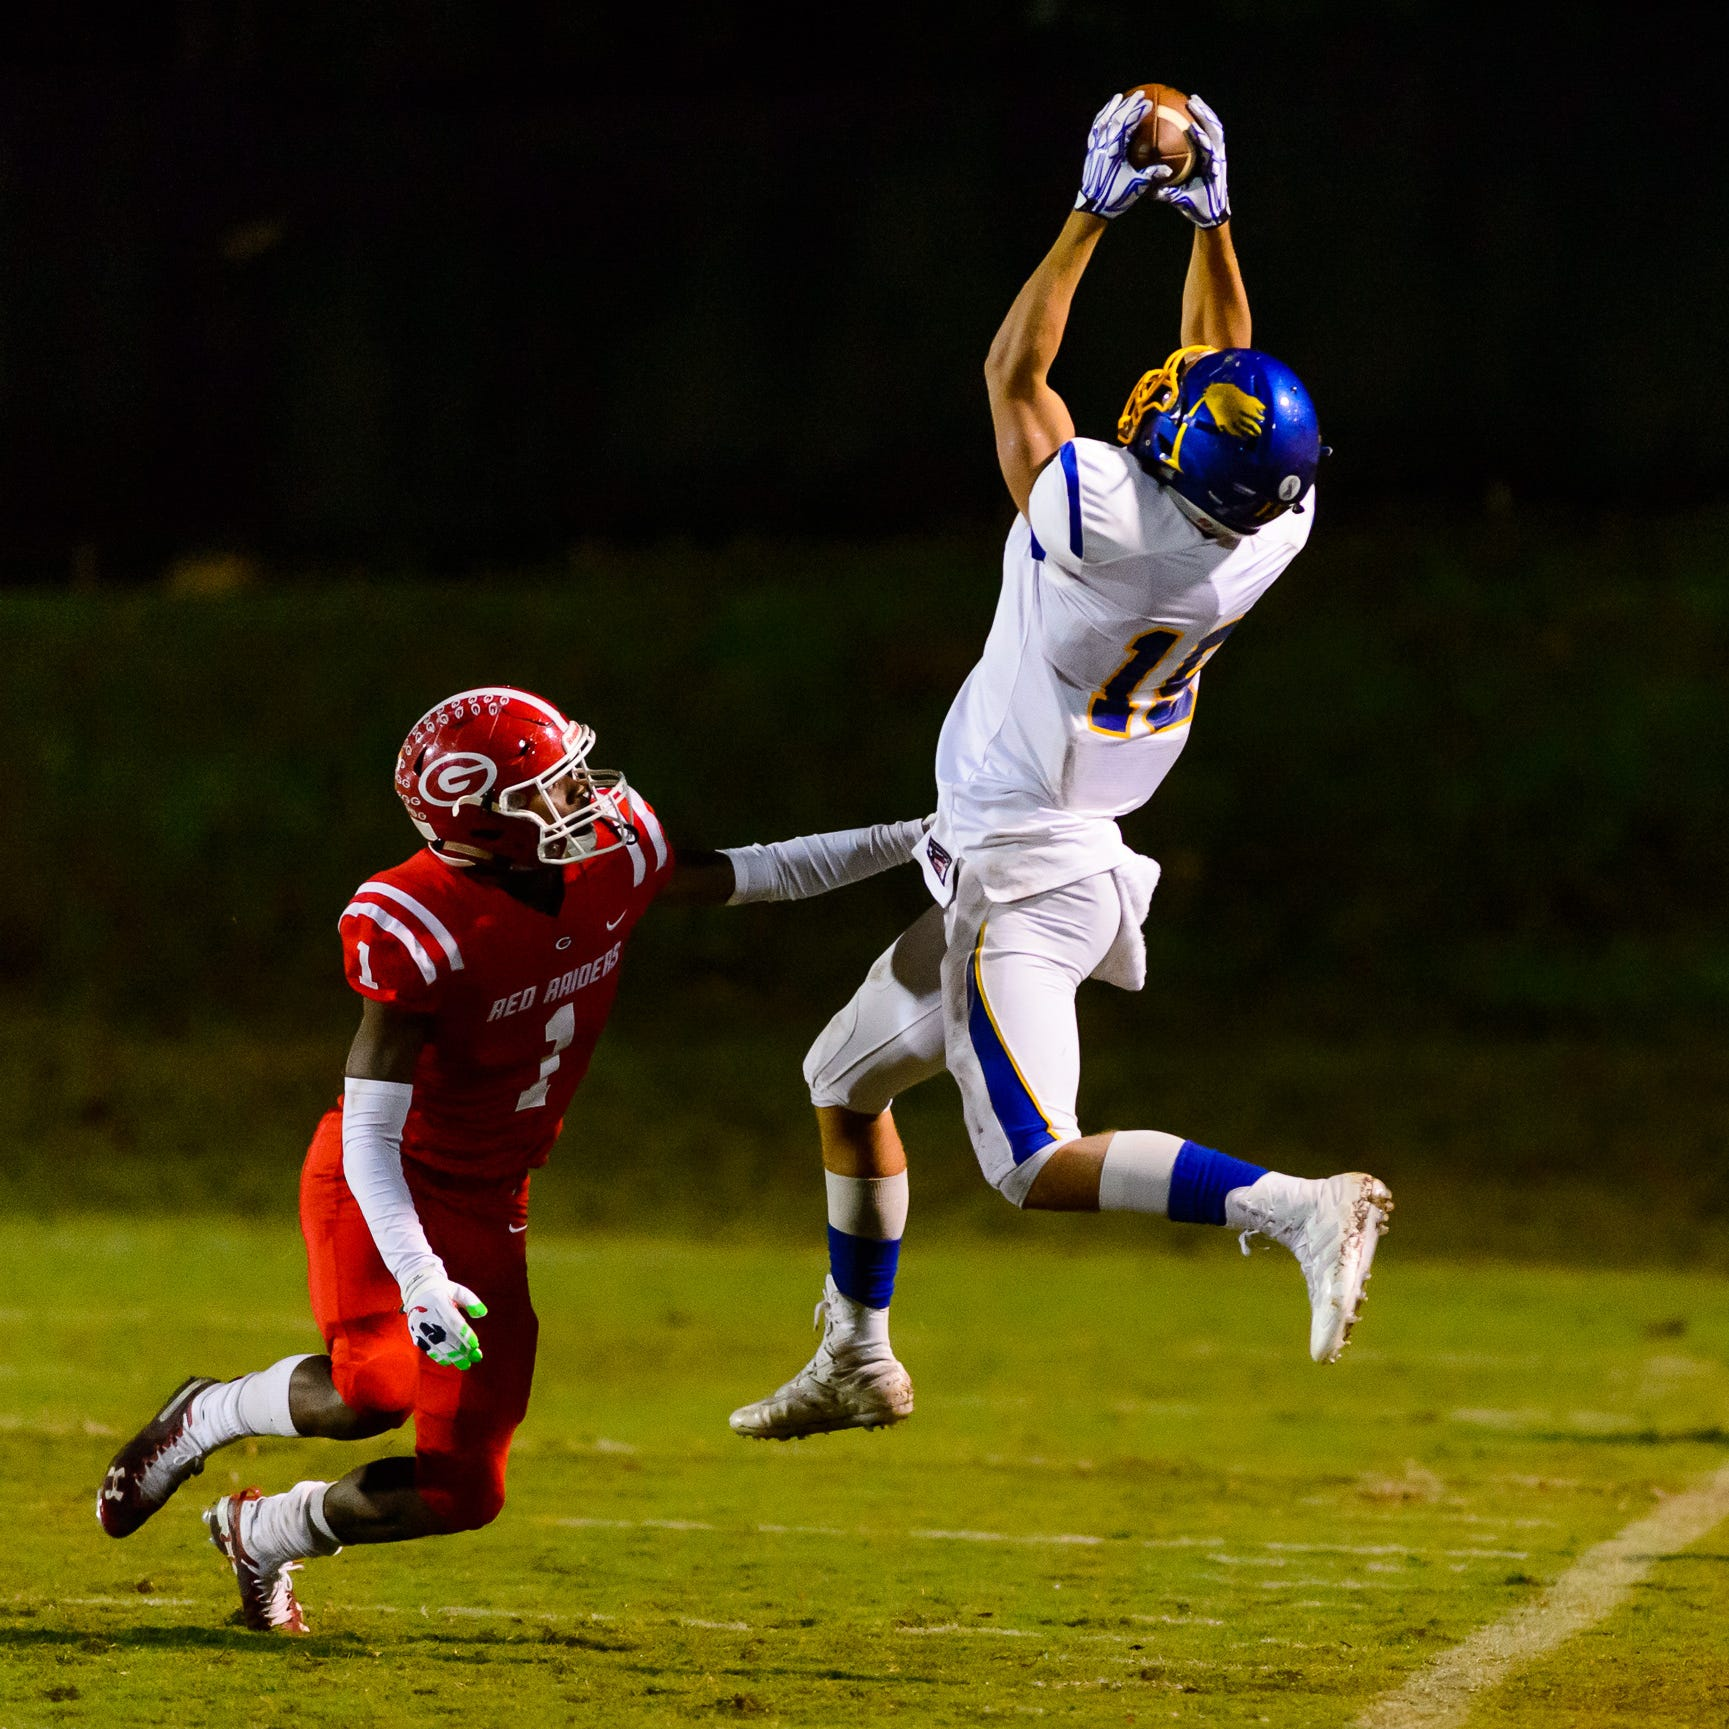 Wren's Tyler Cherry (15) makes a great catch against Greenville but is called out of bounds in the first round of the Class AAAA playoffs Friday, November 9, 2018, at Sirrine Stadium.